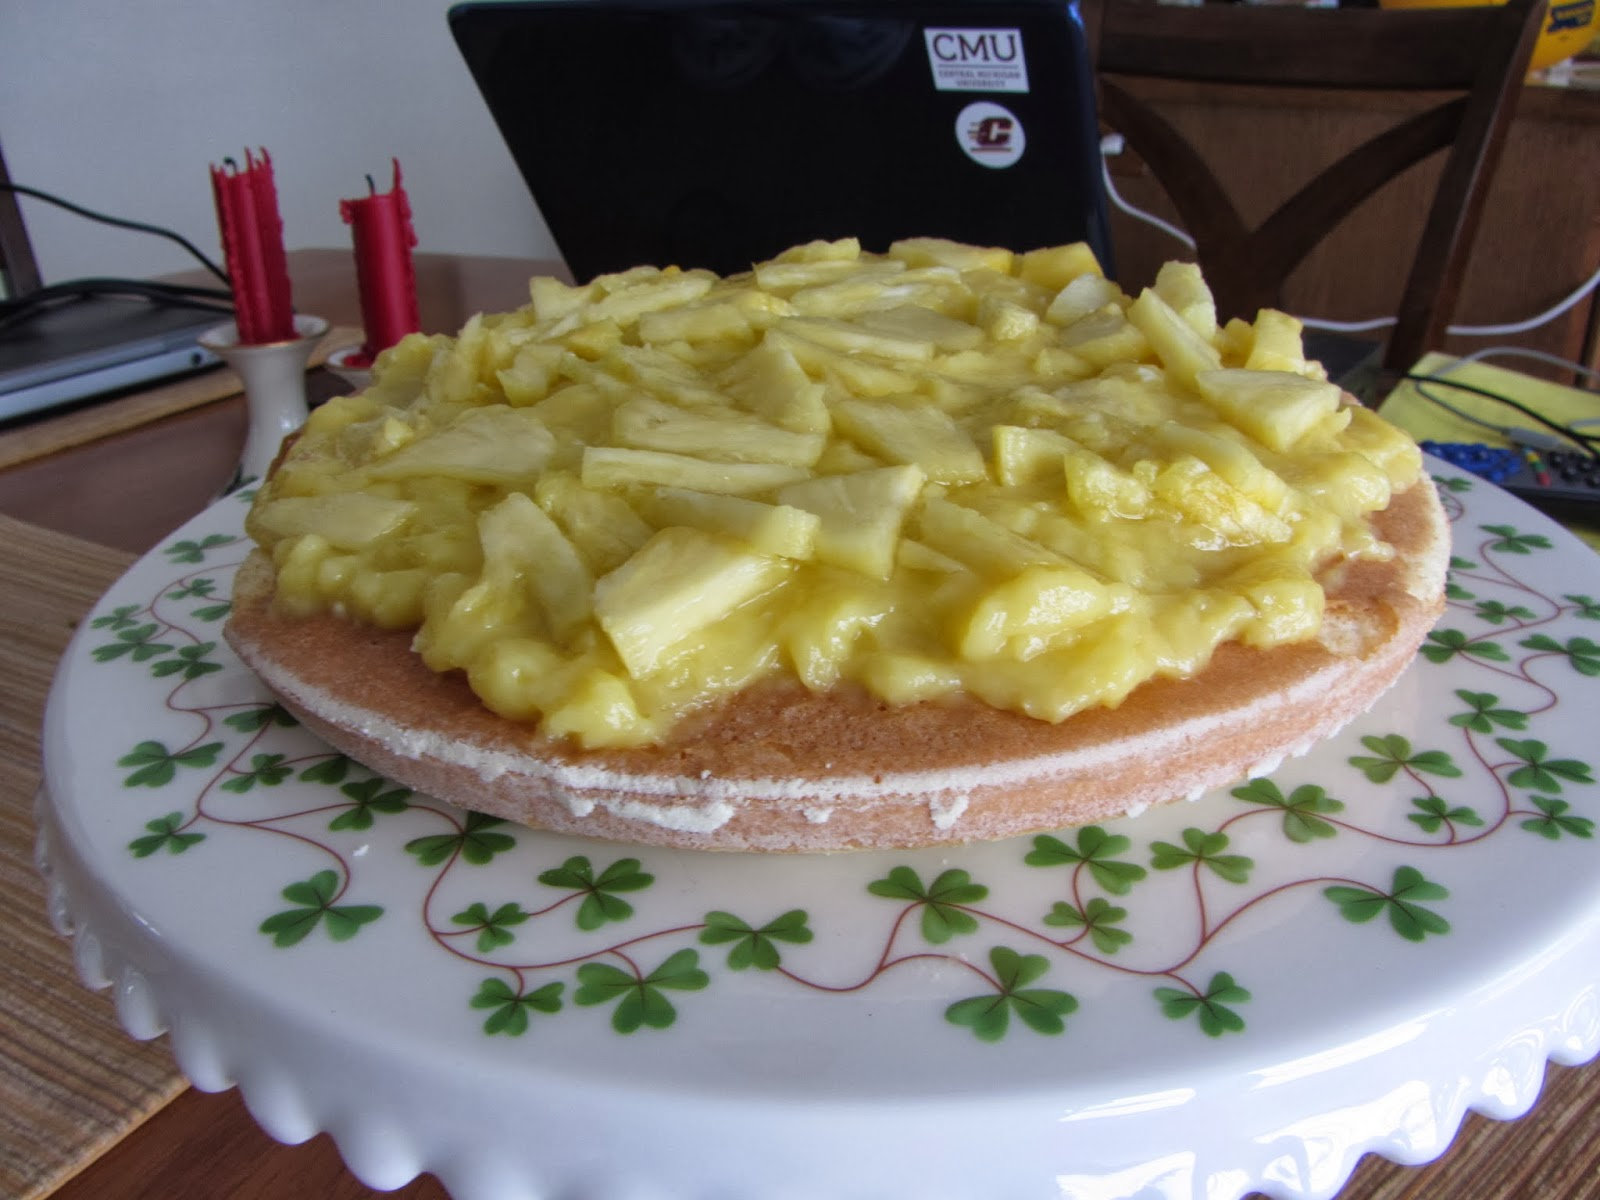 ... : Pineapple Coconut Layer Cake with Pineapple Curd – revisited